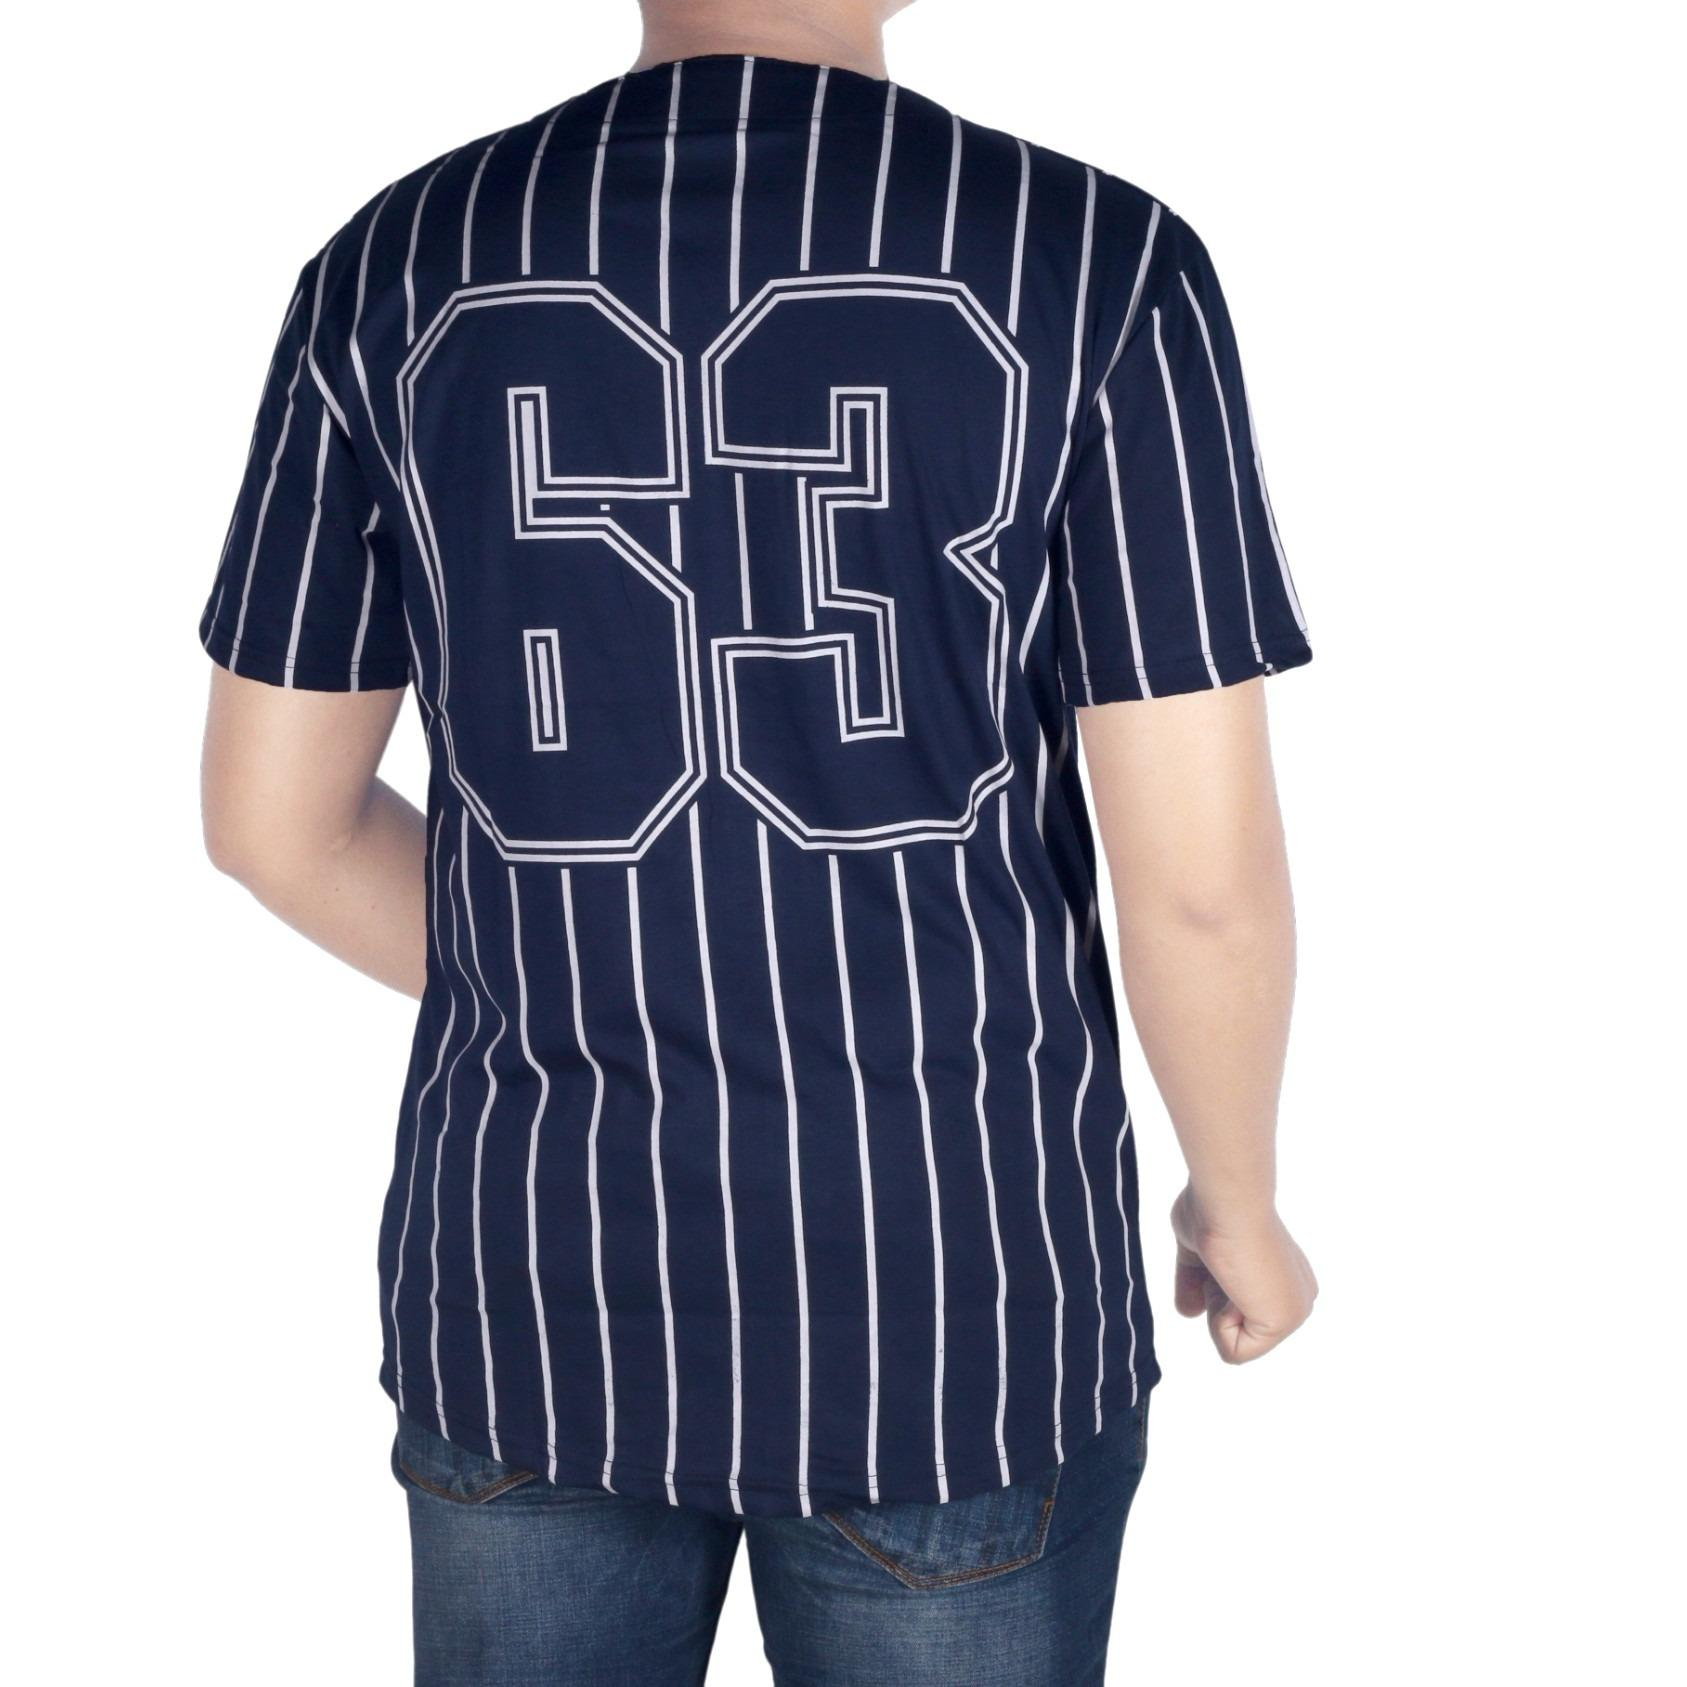 Detail Gambar Dgm_Fashion1 Baju Kaos Distro Baseball Navy and White/ T-Shirt Baseball Man/Baju Kaos Baseball/Kaos Pria/Kaos Distro/Kaos Polos/T-Shirt ...